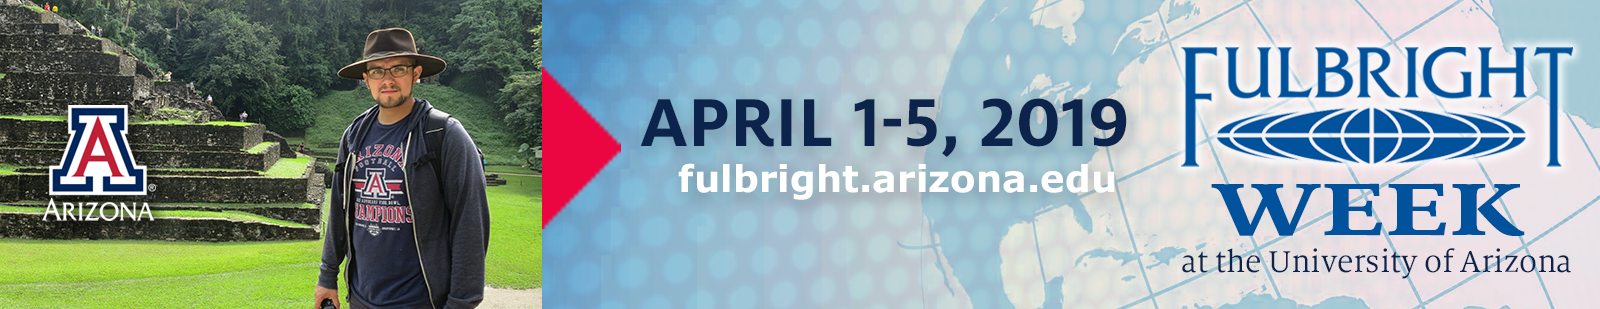 Fulbright Week 2019